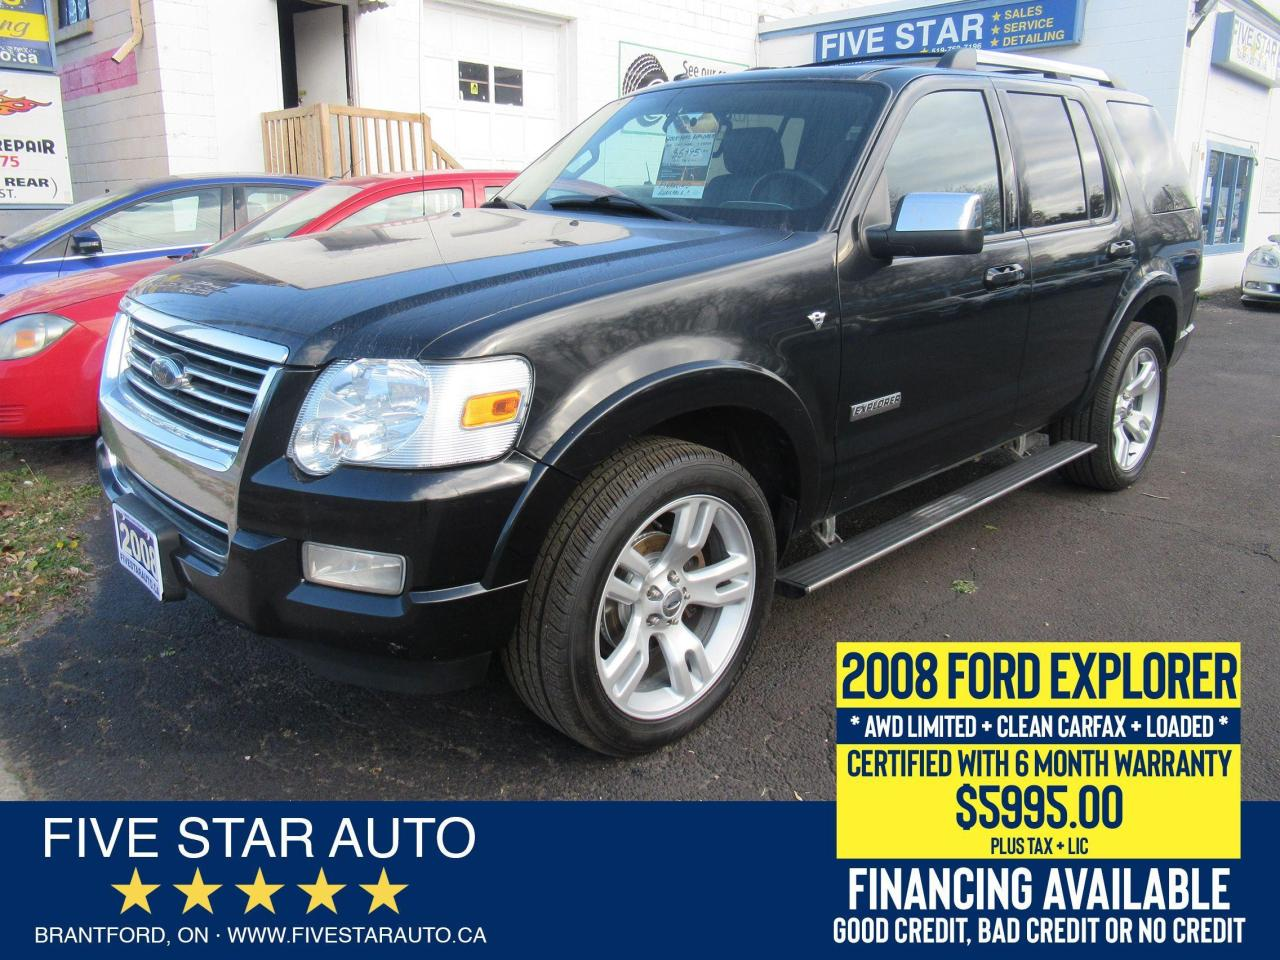 2008 Ford Explorer Limited *Clean Carfax* Certified + 6 Mth Warranty